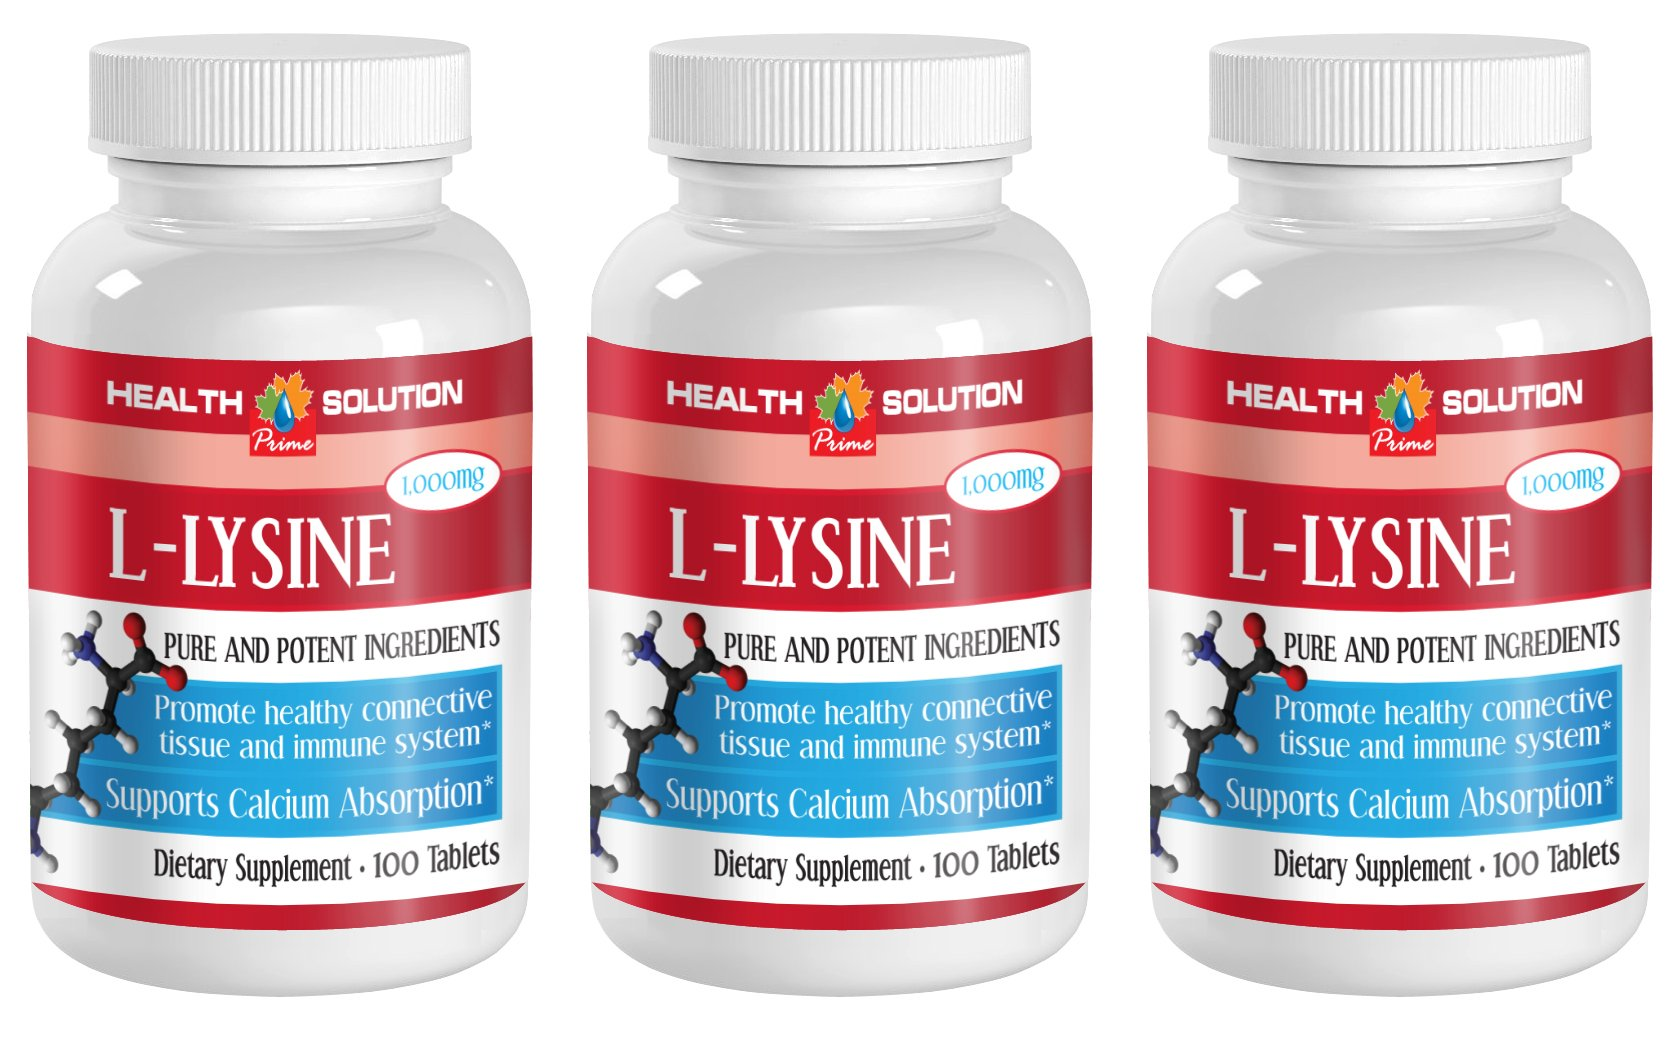 Lysine - L-LYSINE 1000MG - improve immunity (3 Bottles - 300 Tablets)